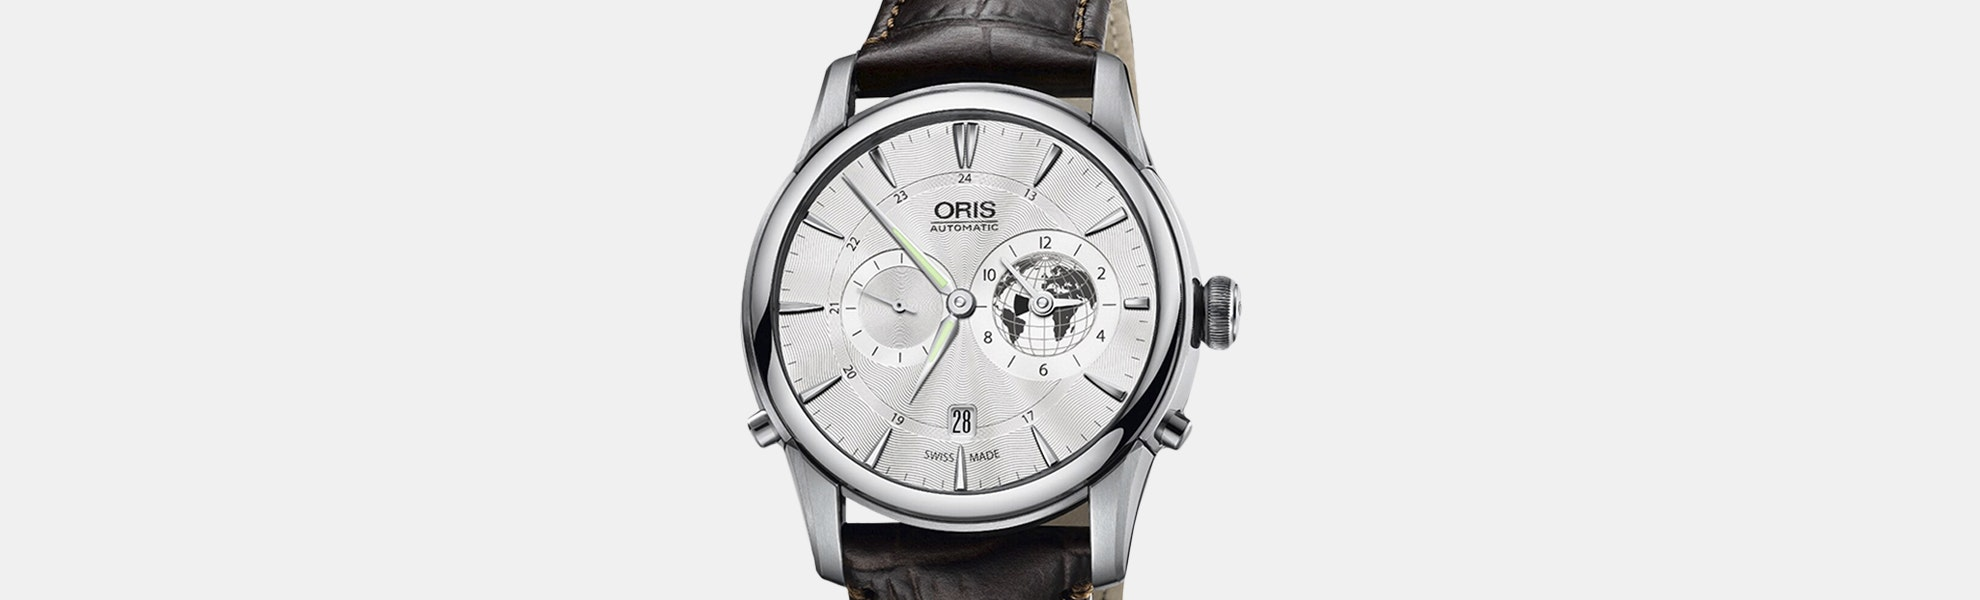 Oris Greenwich Mean Time Automatic Watch